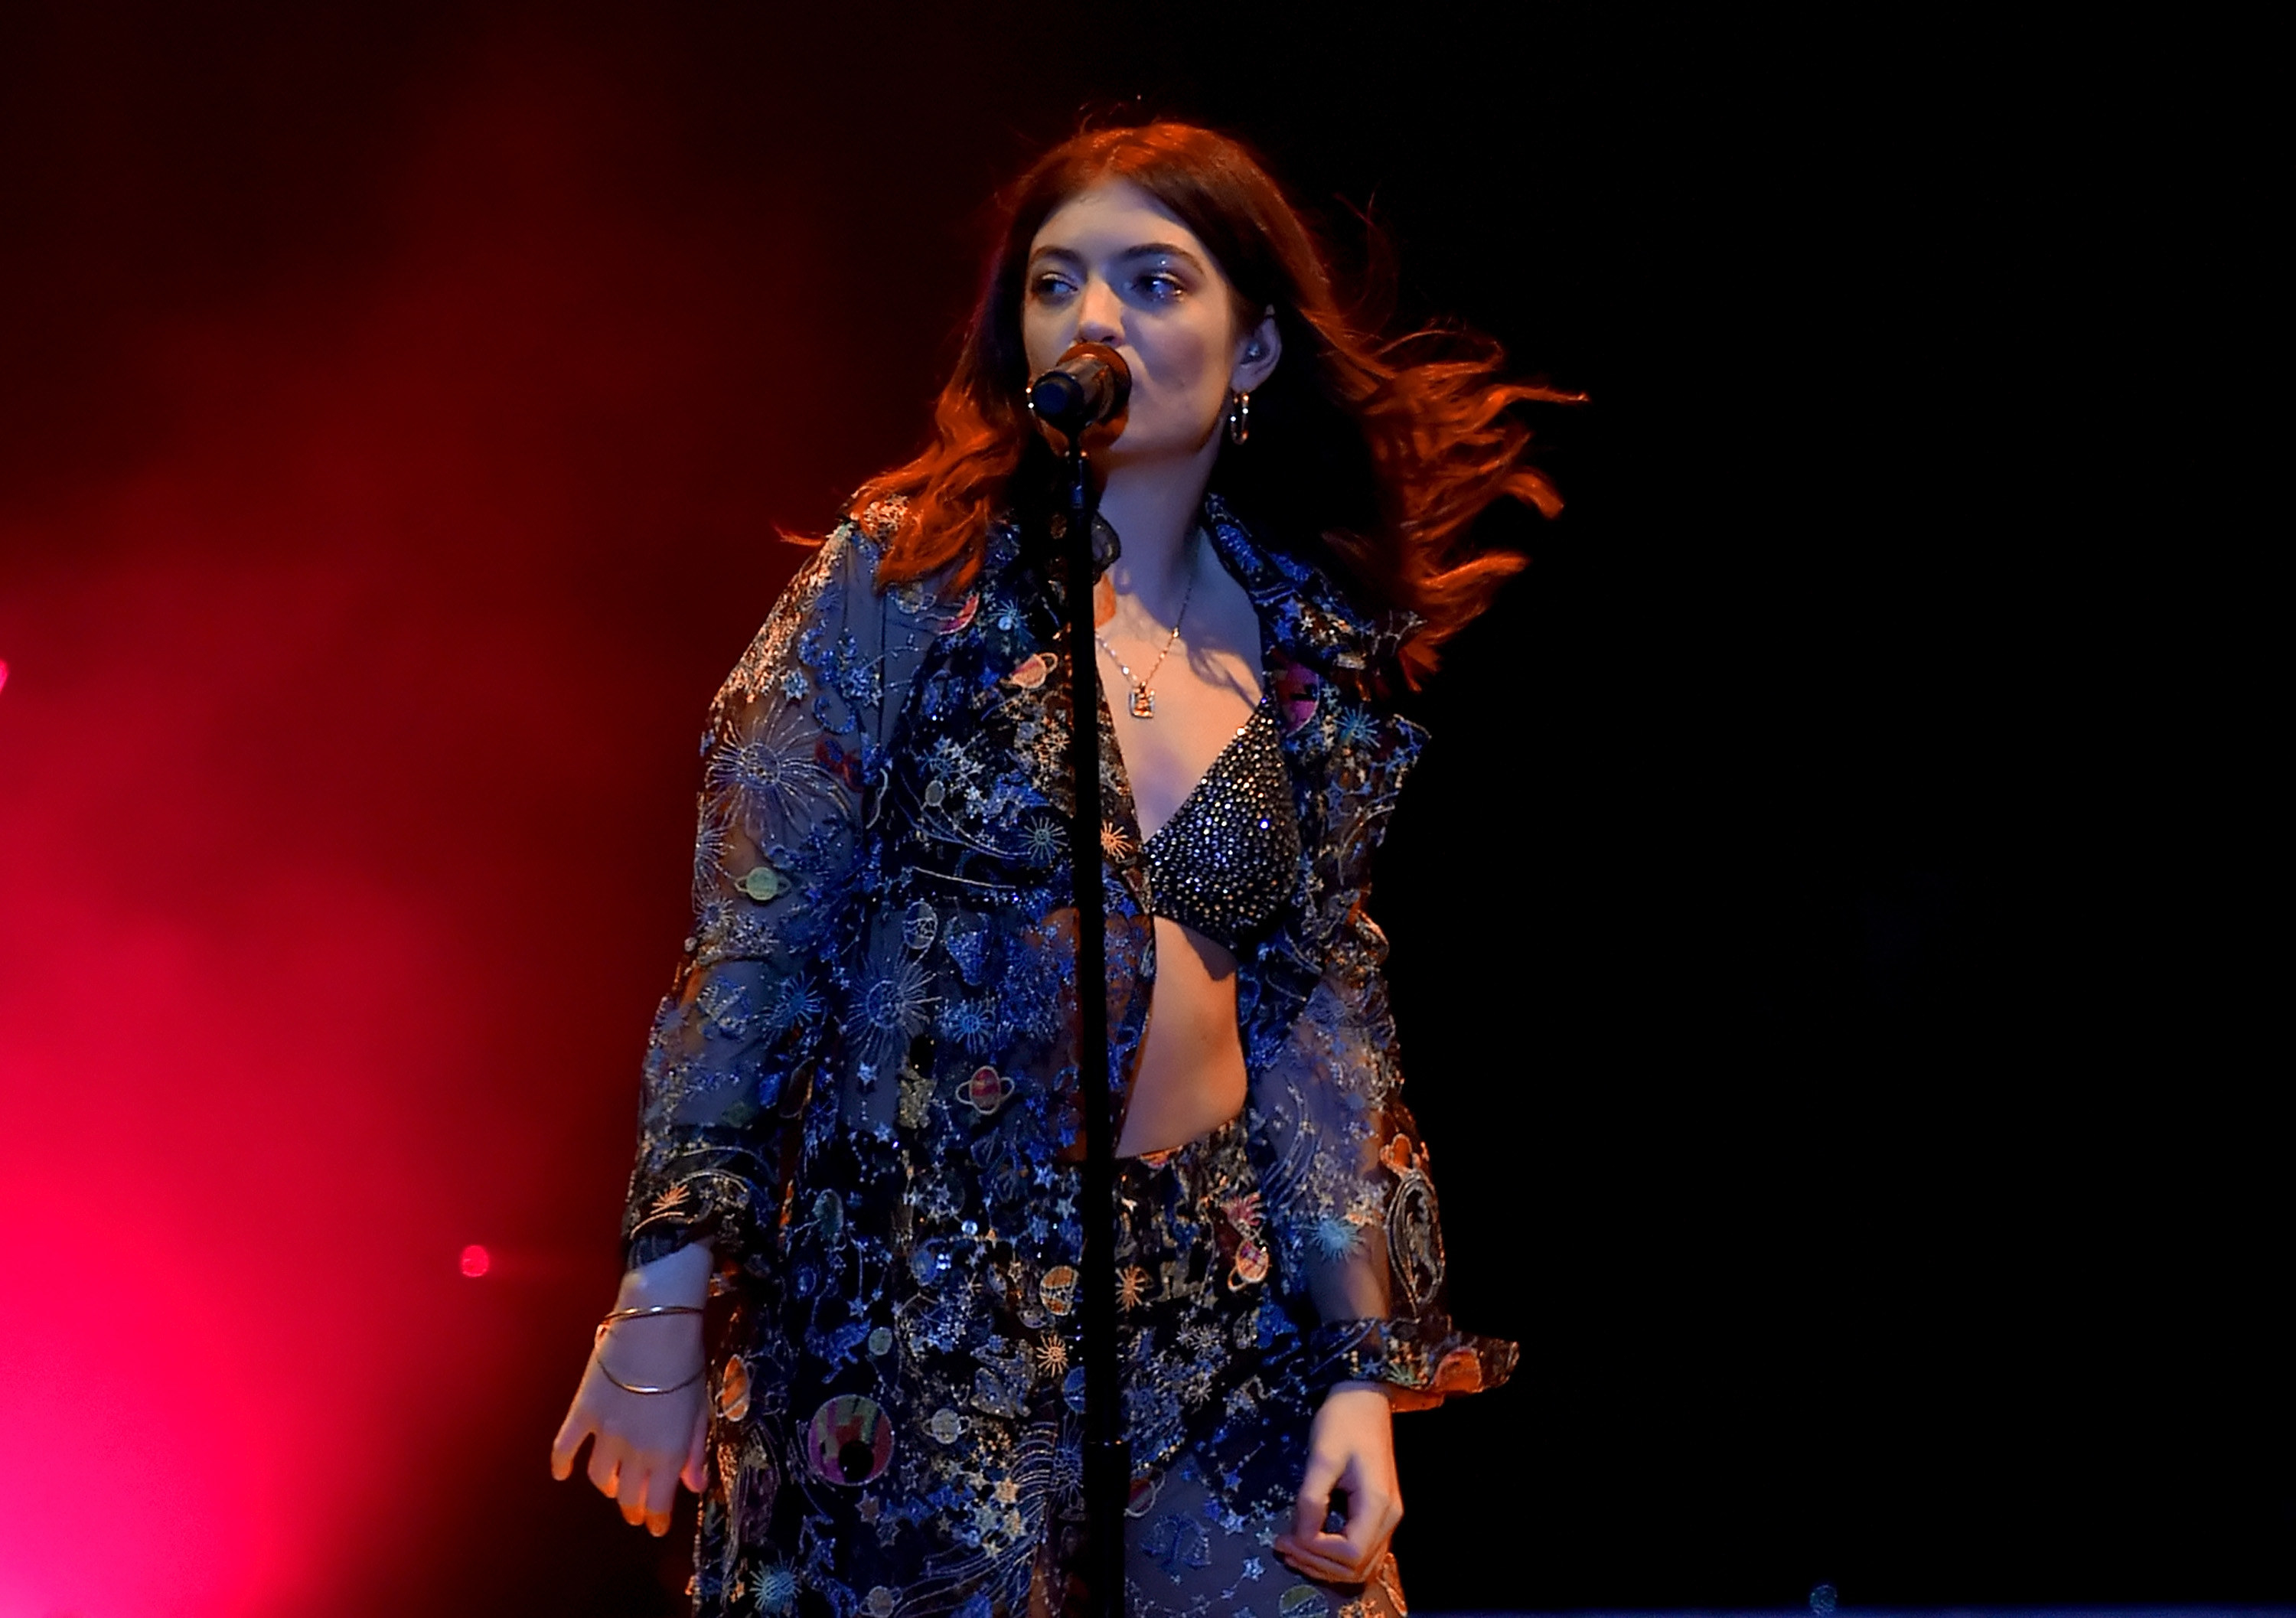 Lorde sings on stage in a matching embellished long sleeve top and pants